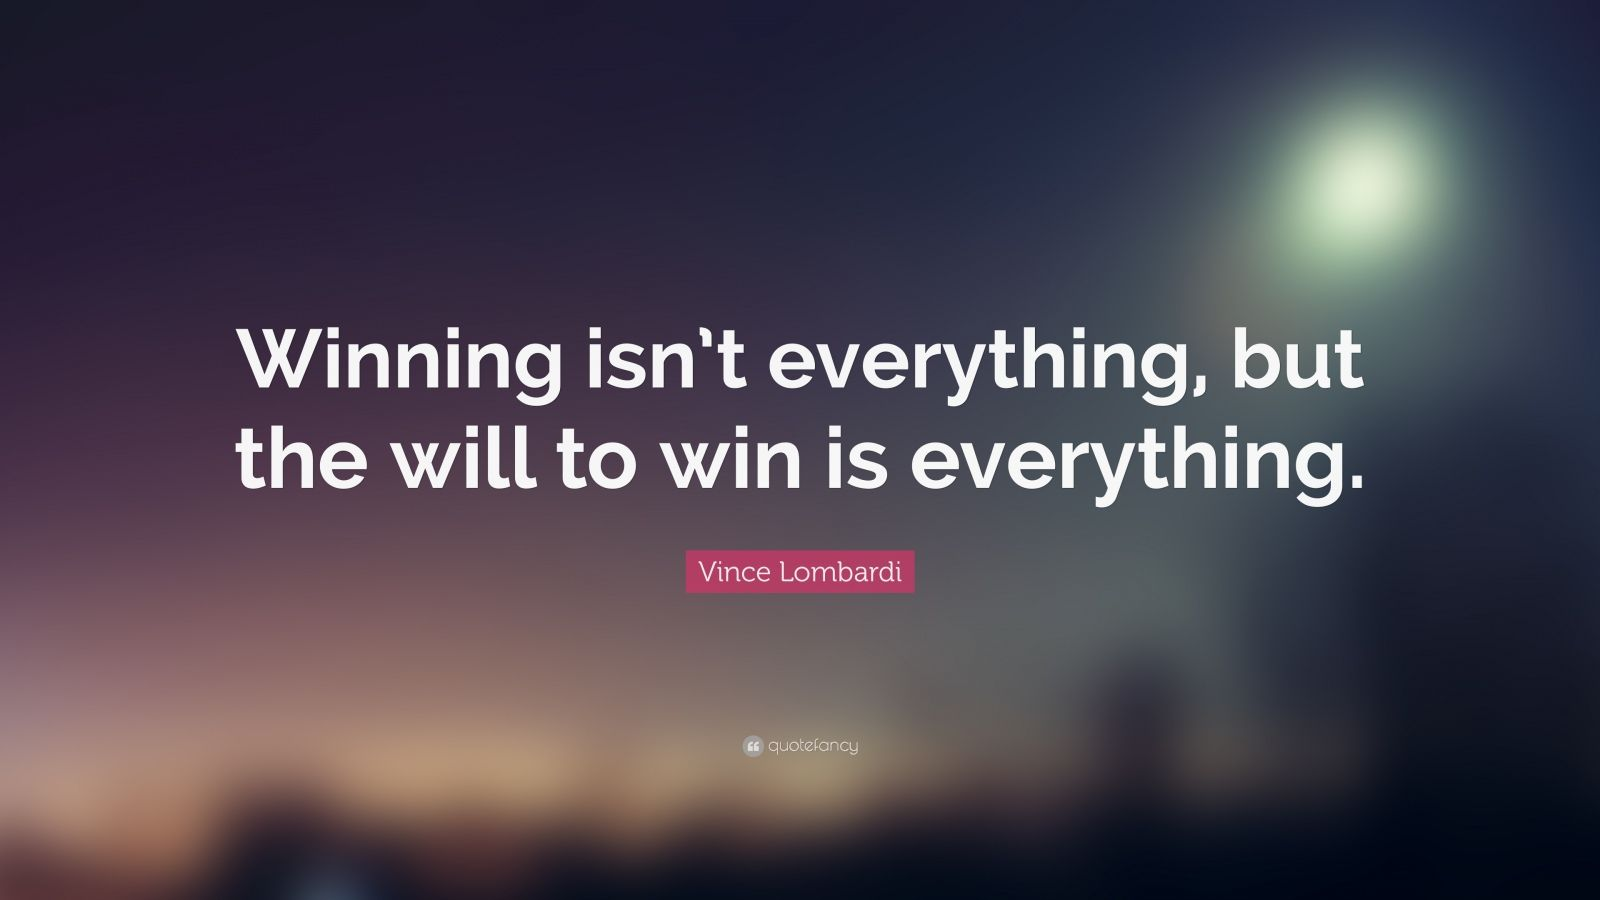 winning isnt everything 6 makes winning sweeter winning is only valuable when it comes with effort and real challenge when your child betters a worthy opponent, it gives him or her a sense of achievement knowing that.